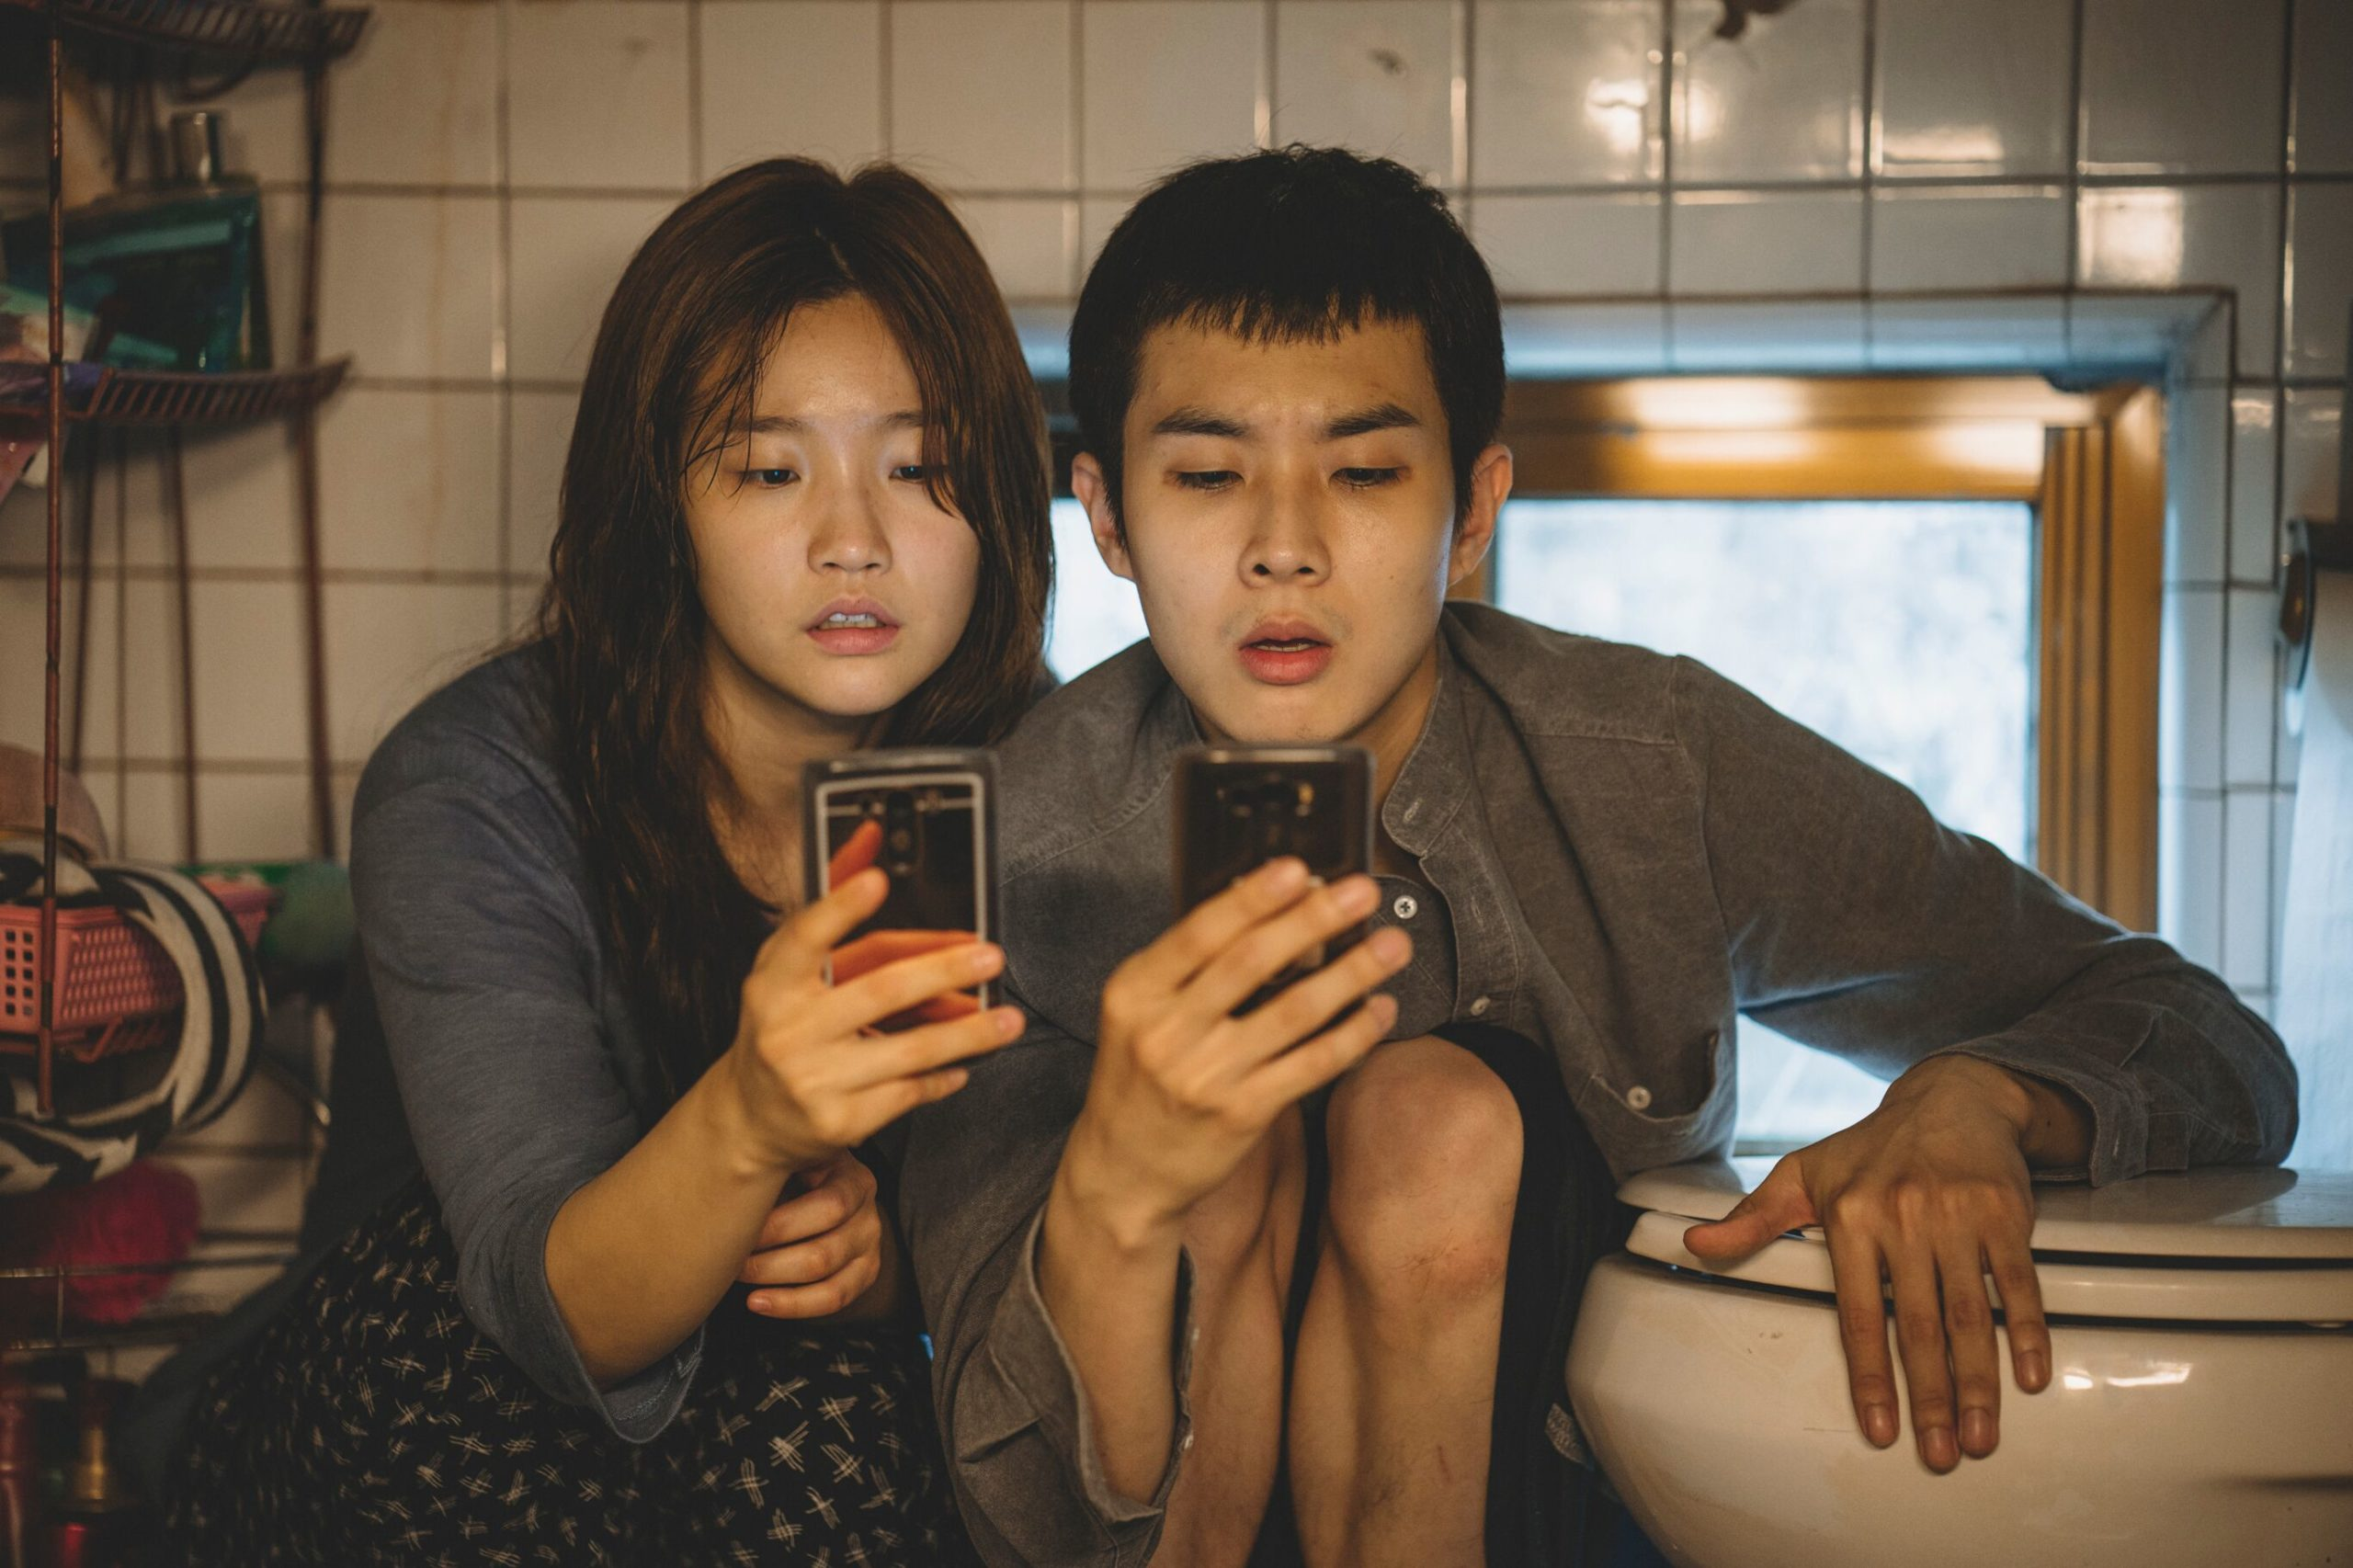 Parasite' Stars Park So-dam and Choi Woo-shik on Breaking Barriers and  Cultural Differences